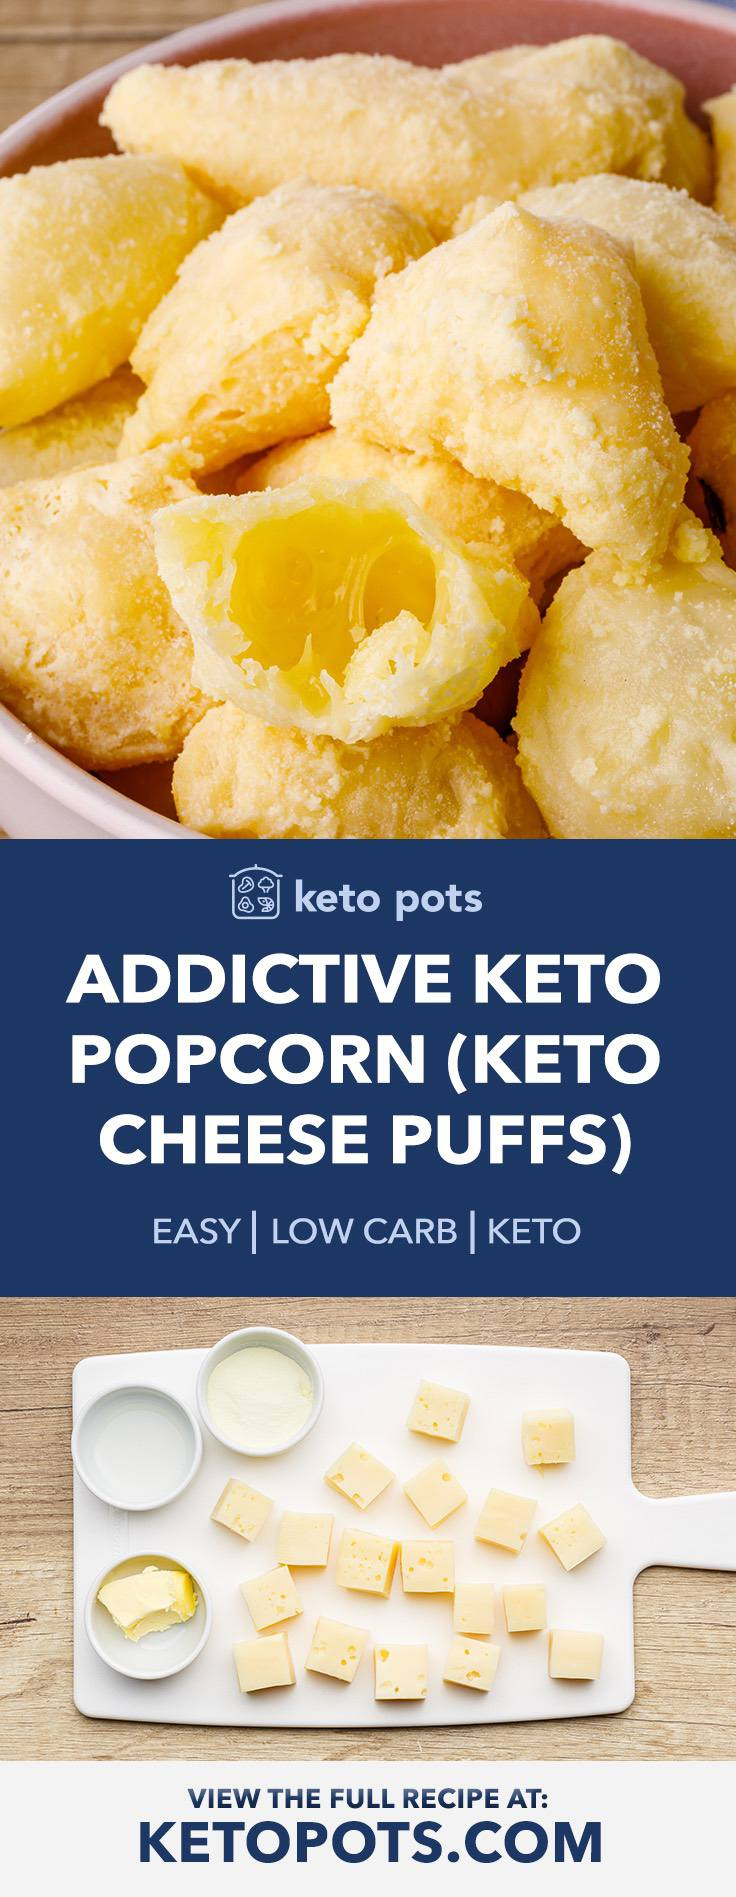 How to Make Low Carb Keto Popcorn